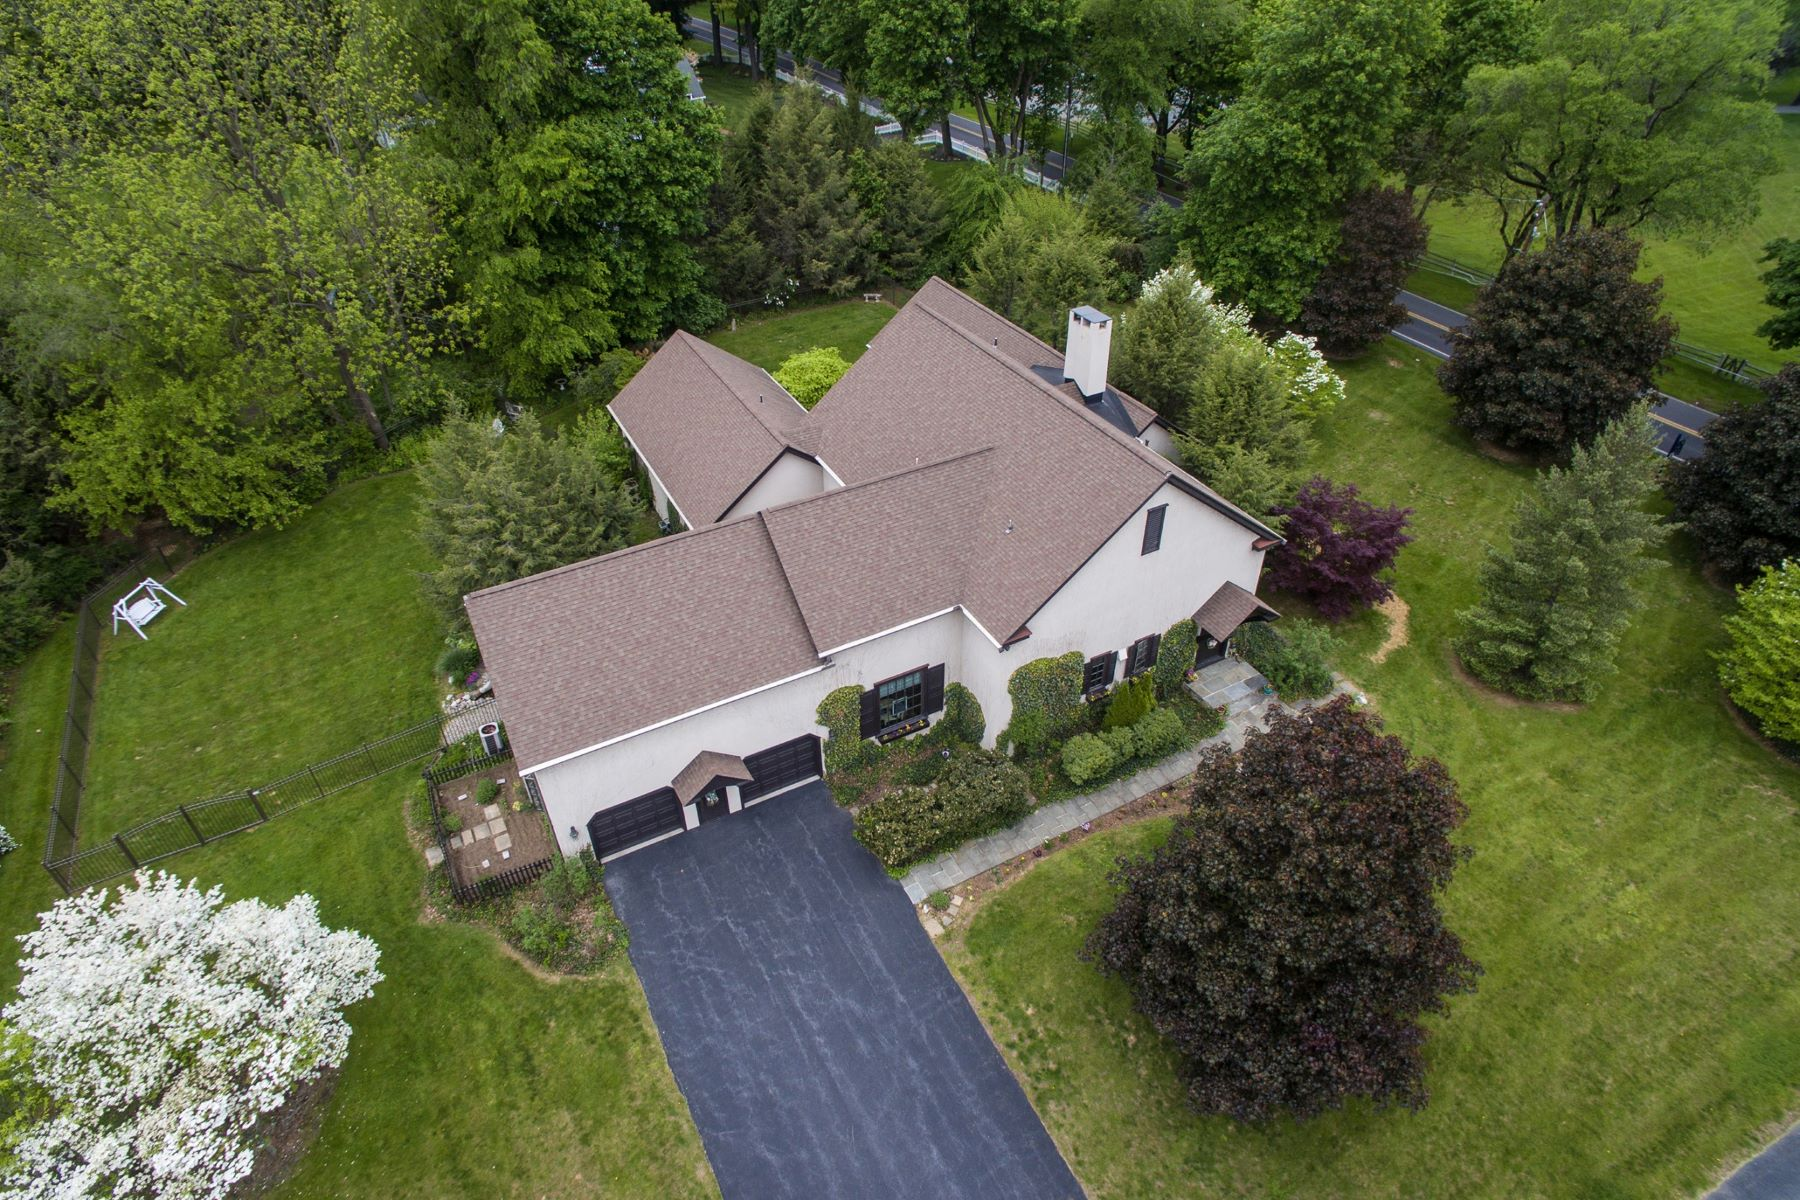 Single Family Home for Sale at Tudor Residence & Artist Studio 4430 POND VIEW CT Bethlehem, Pennsylvania, 18020 United States